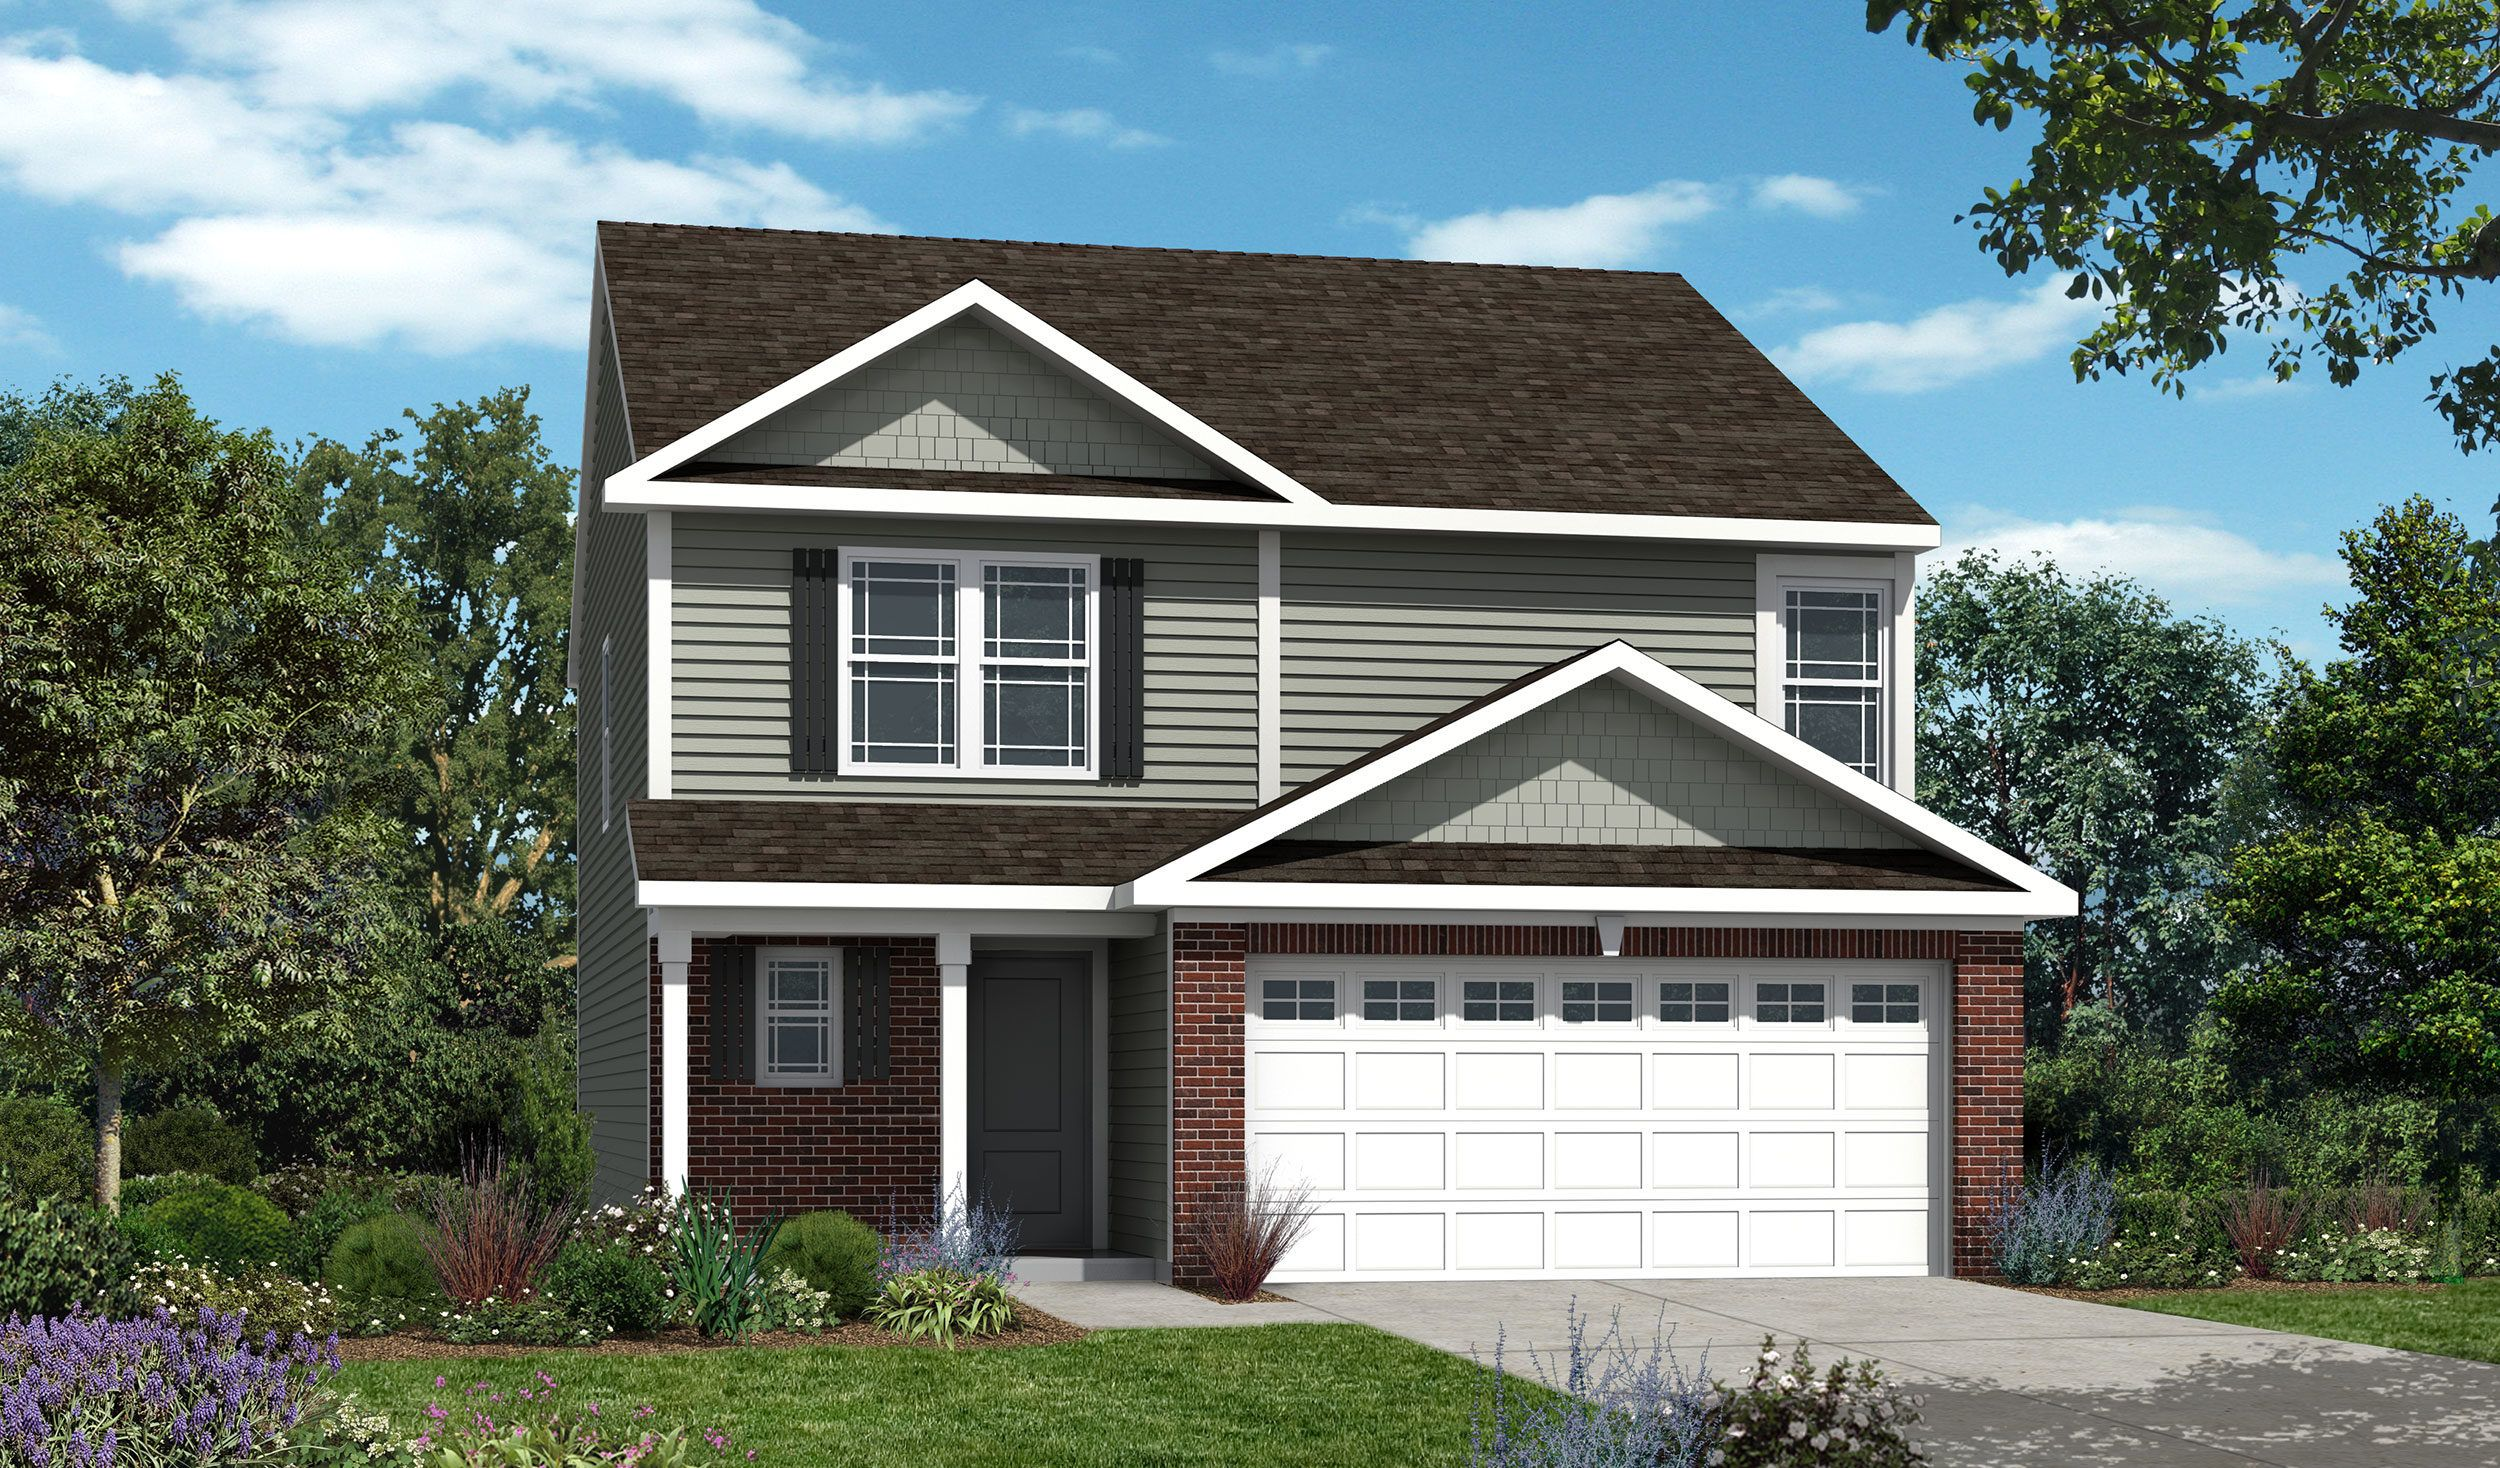 Westport homes of indianapolis sawmill waverly 1359318 for Houses for sale westport